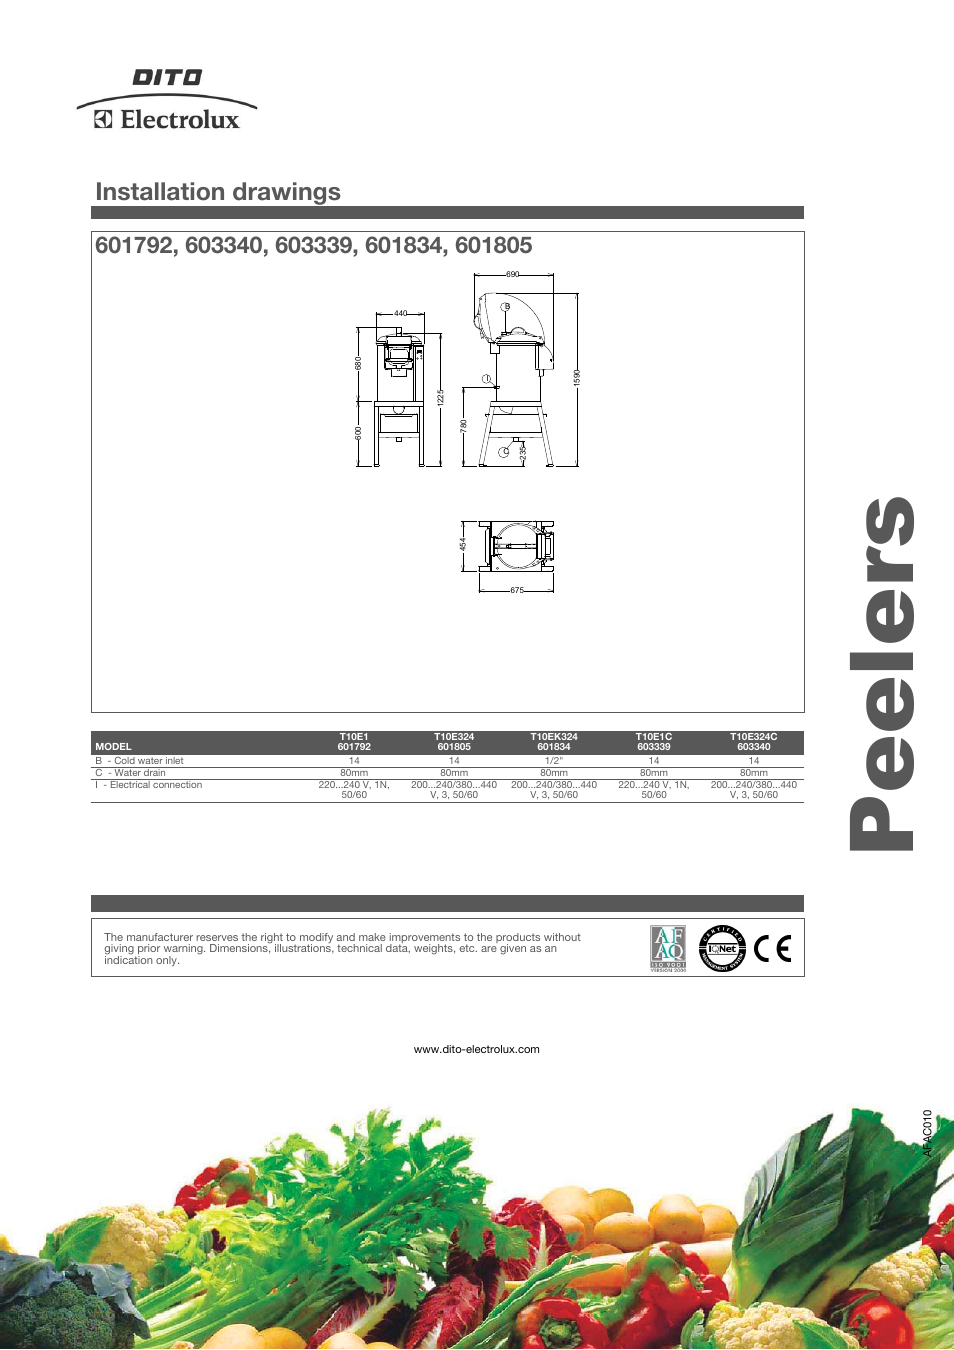 Peelers, Installation drawings | Electrolux Dito 603340 User Manual | Page  4 / 4